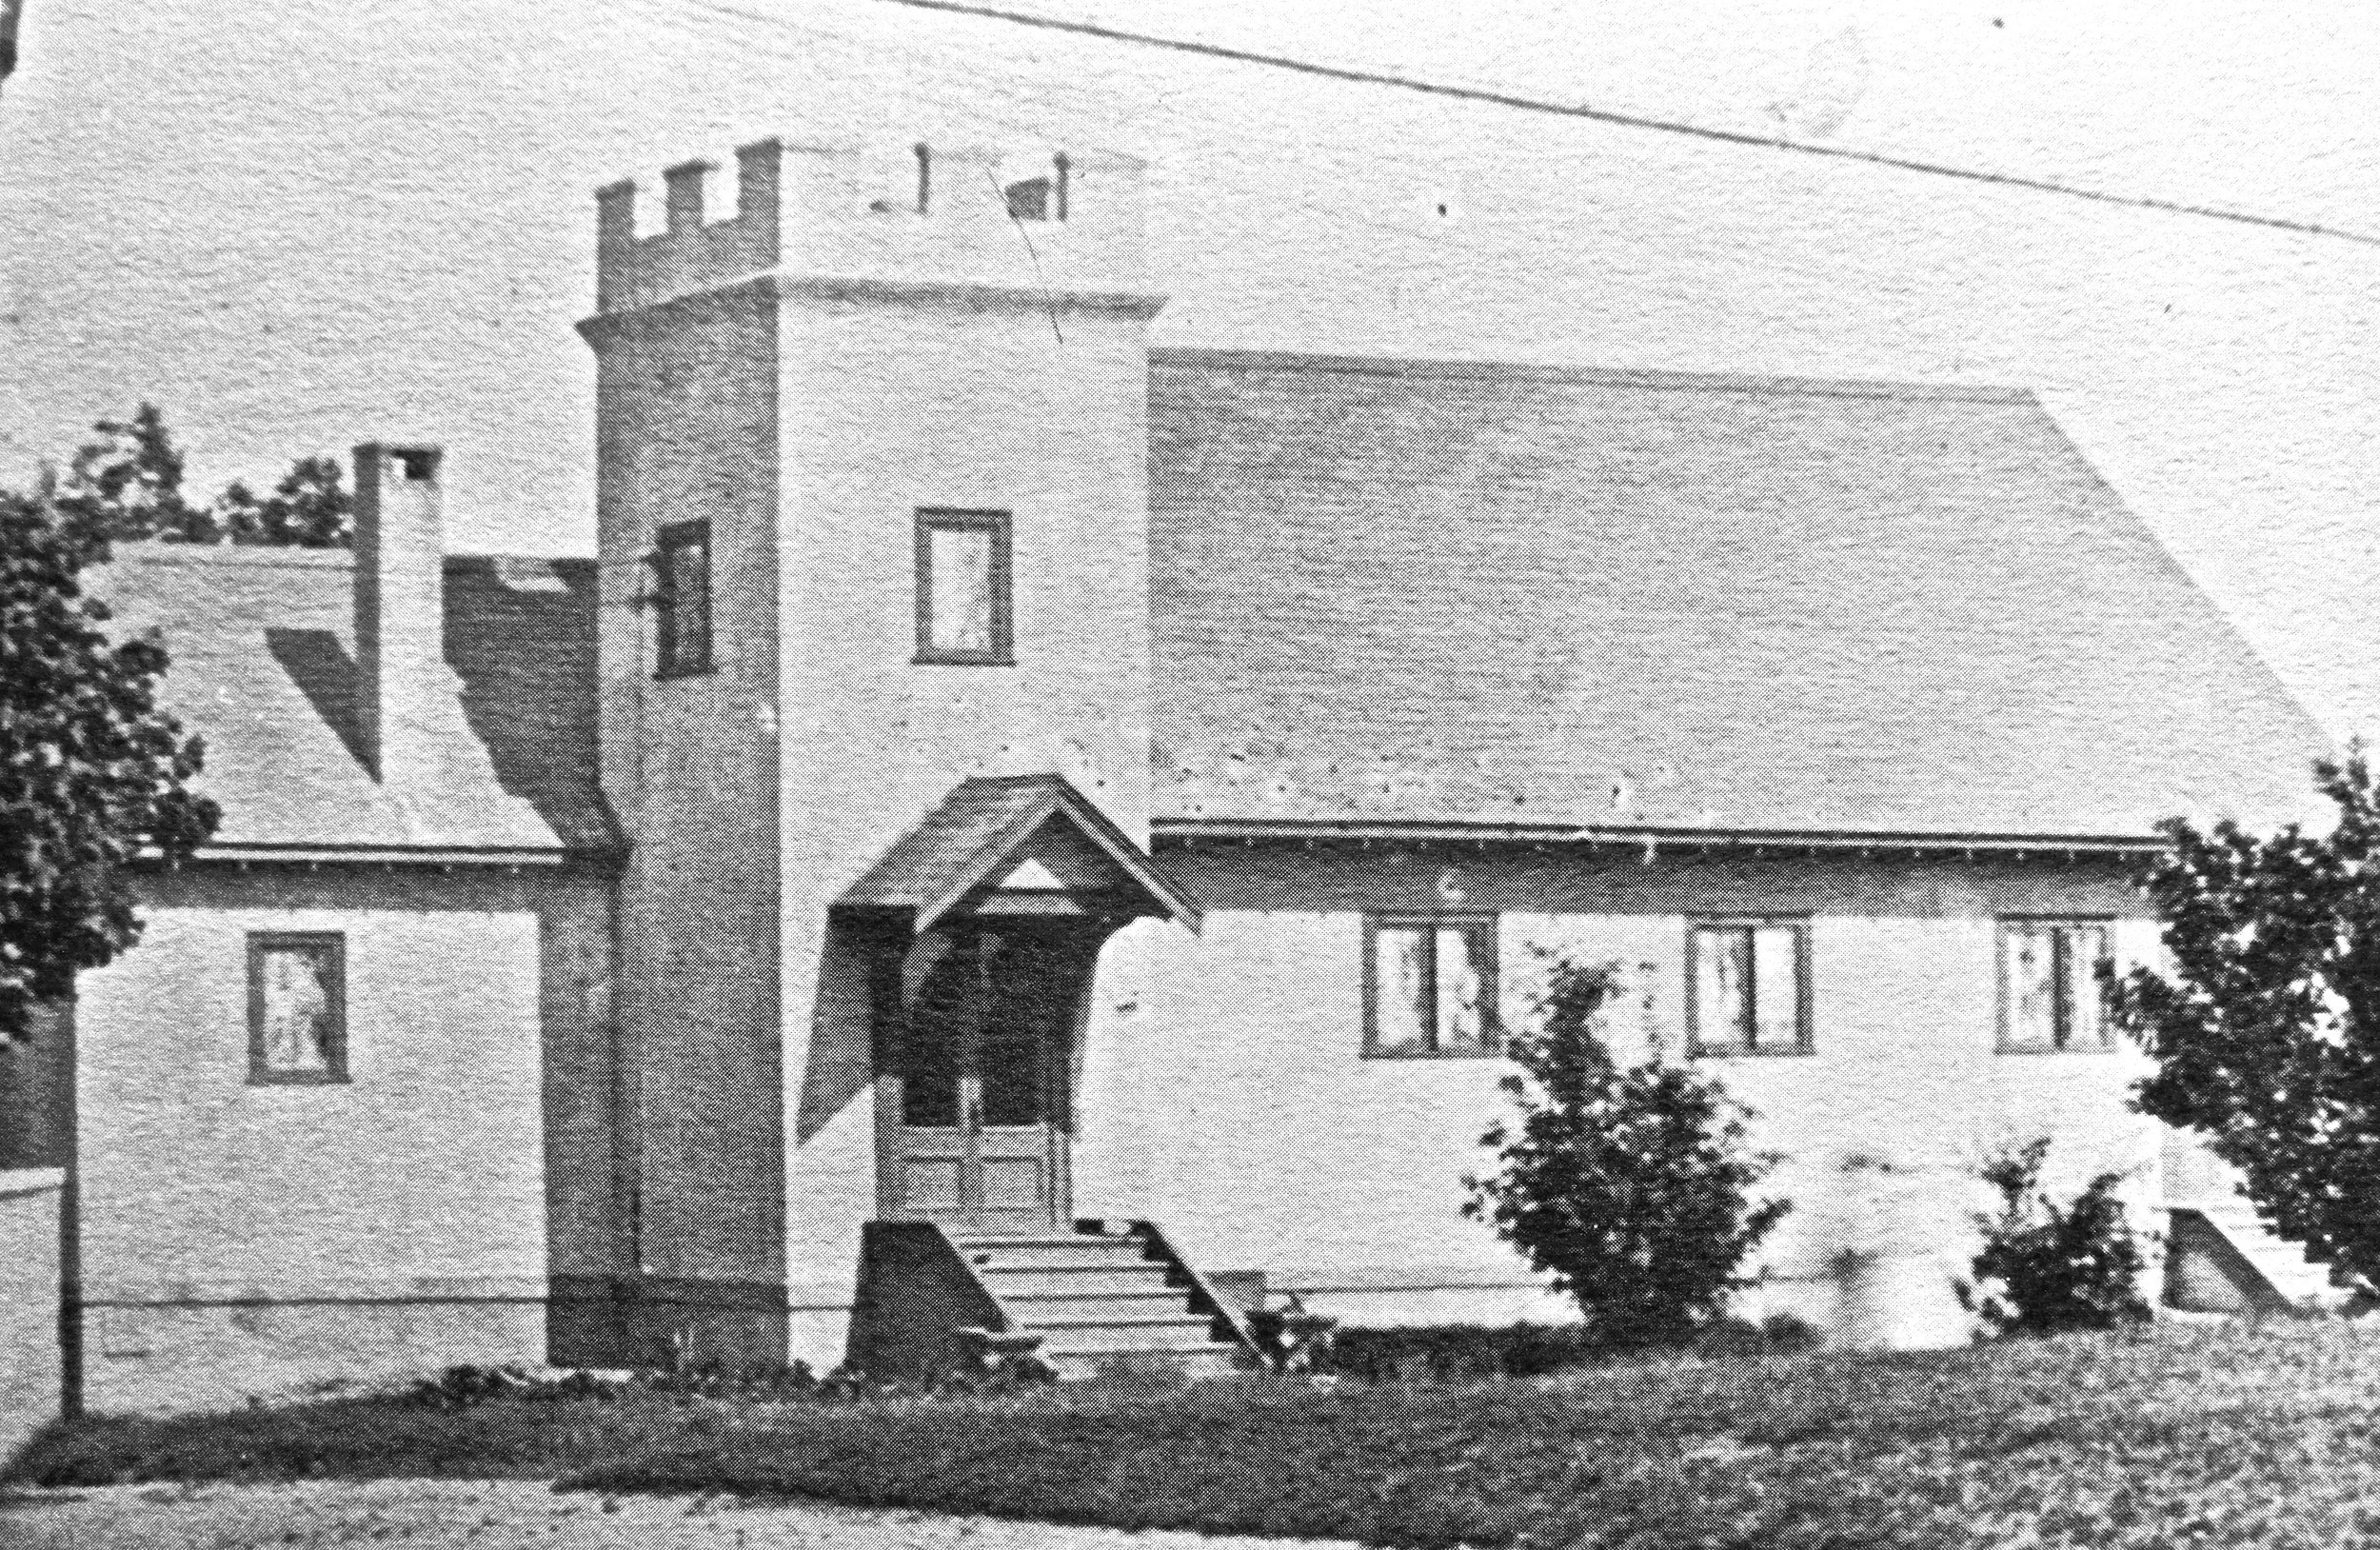 - Shown here is the original building of the First Church of Squantum built and dedicated in 1914. The pastor's study is to the left of the main door, and the sanctuary to the right. Note: the tower is to the left of the sanctuary.